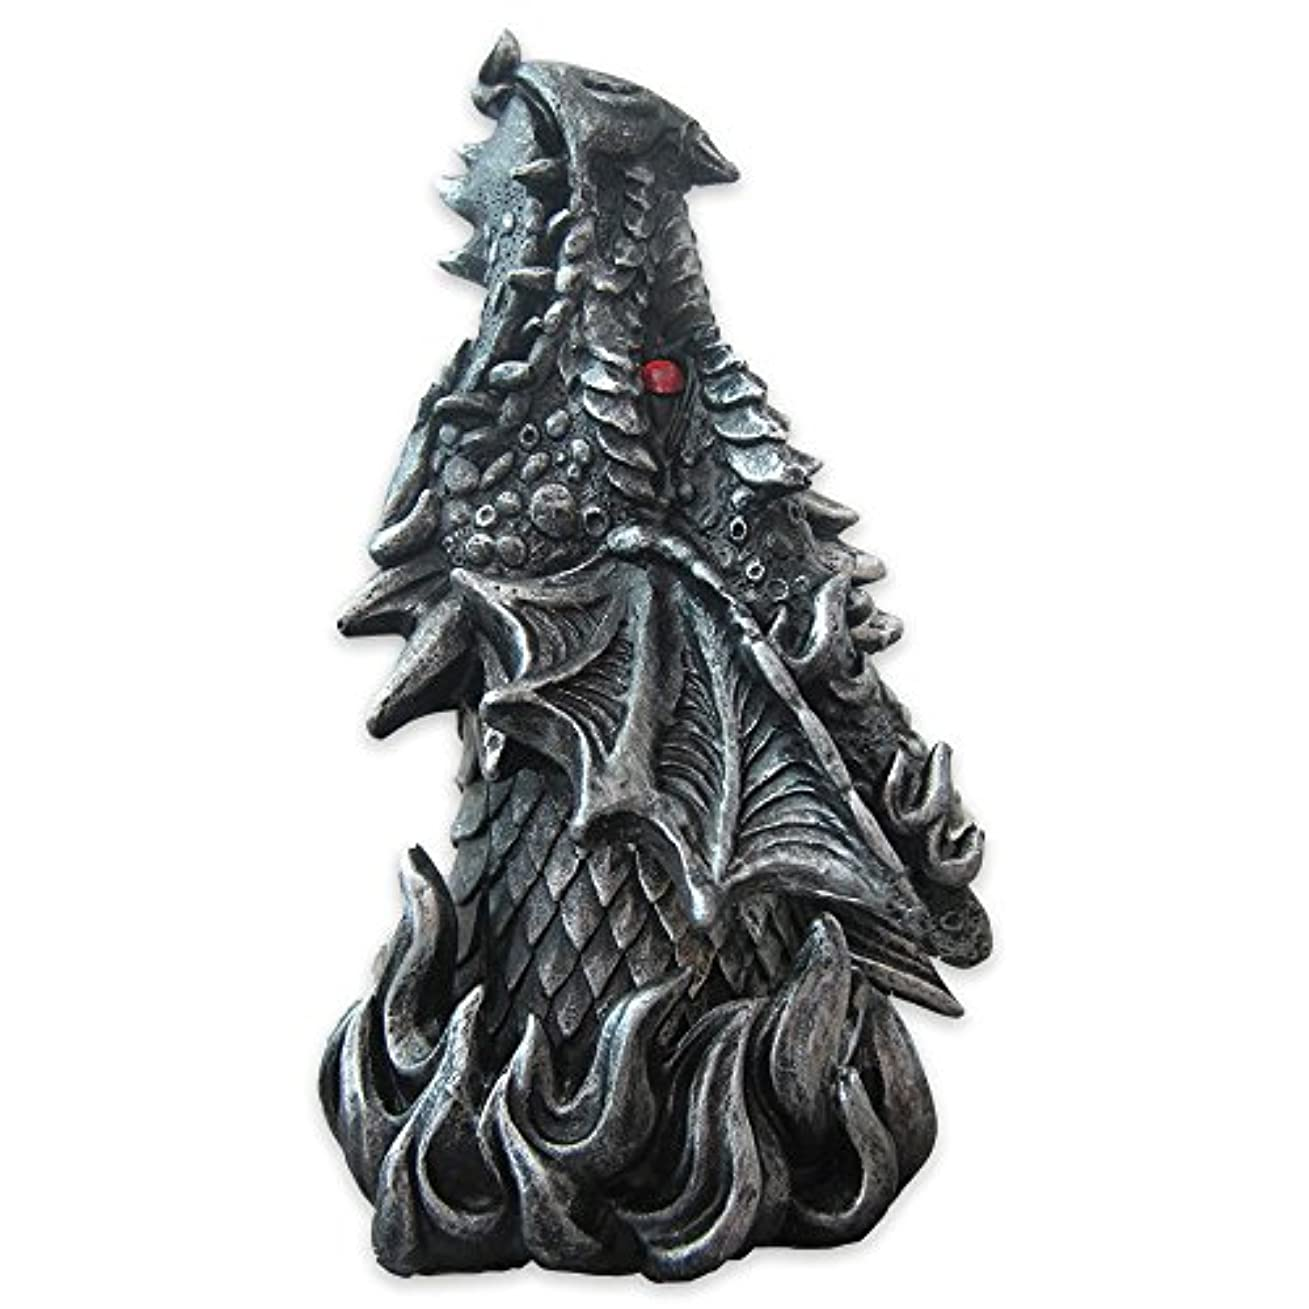 郵便屋さんハンサムスリップDragon Figure Cone Incense Burner Fiery Eyes - Gothic Smoke Breathing Decor